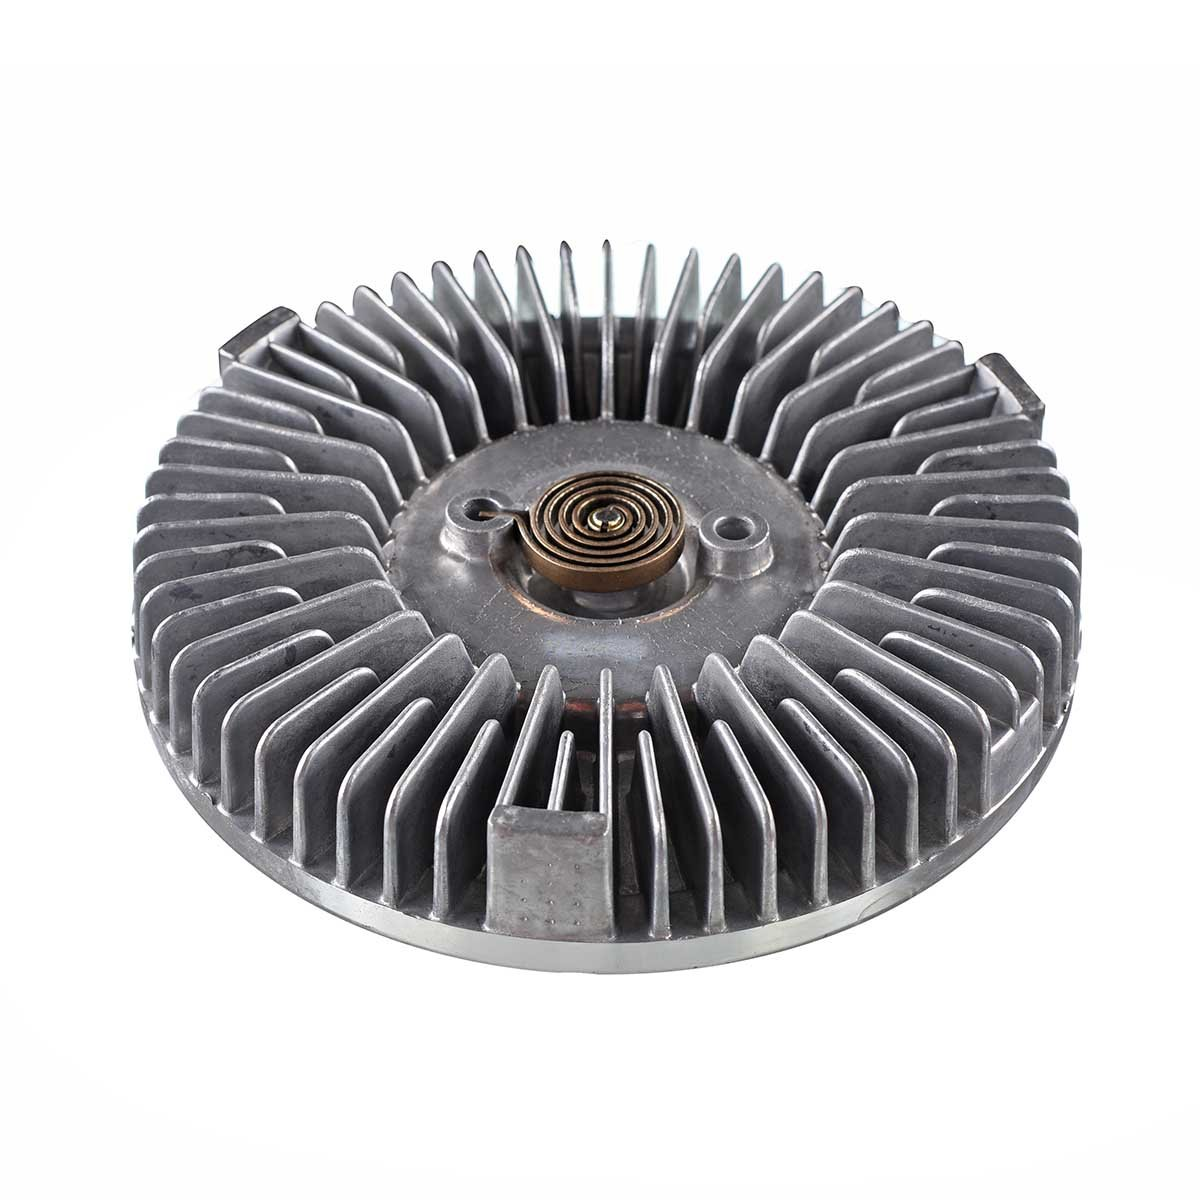 A-Premium Engine Cooling Fan Clutch for Ford F-150 1997-2008 F-150 Heritage 2004 V6 4.2L